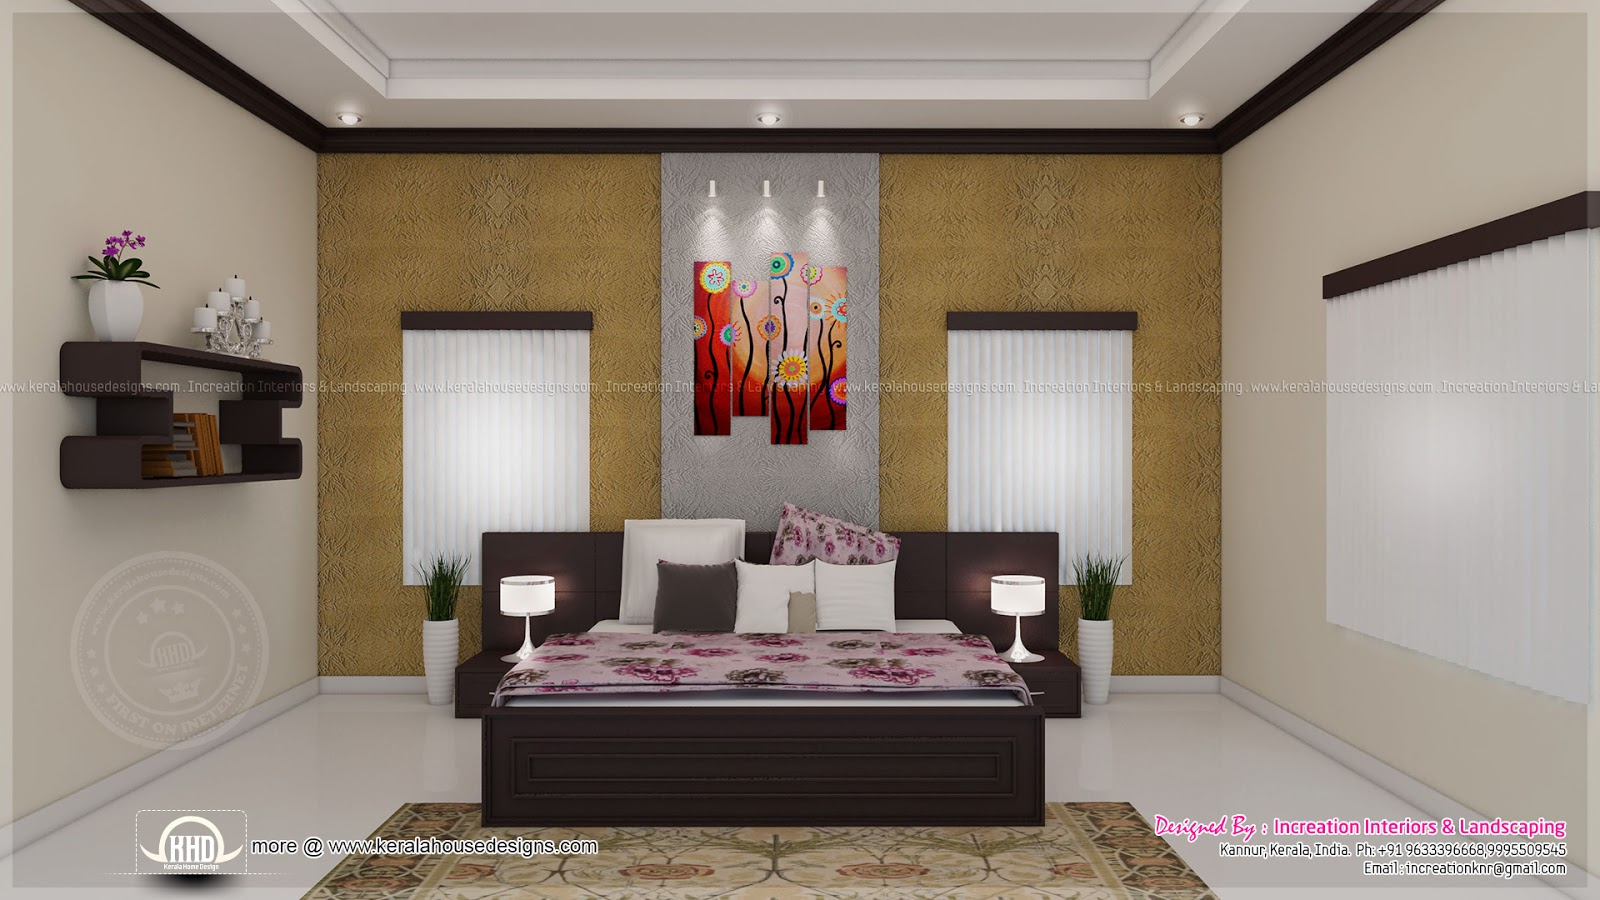 House interior ideas in 3d rendering kerala home design for Home interior design india